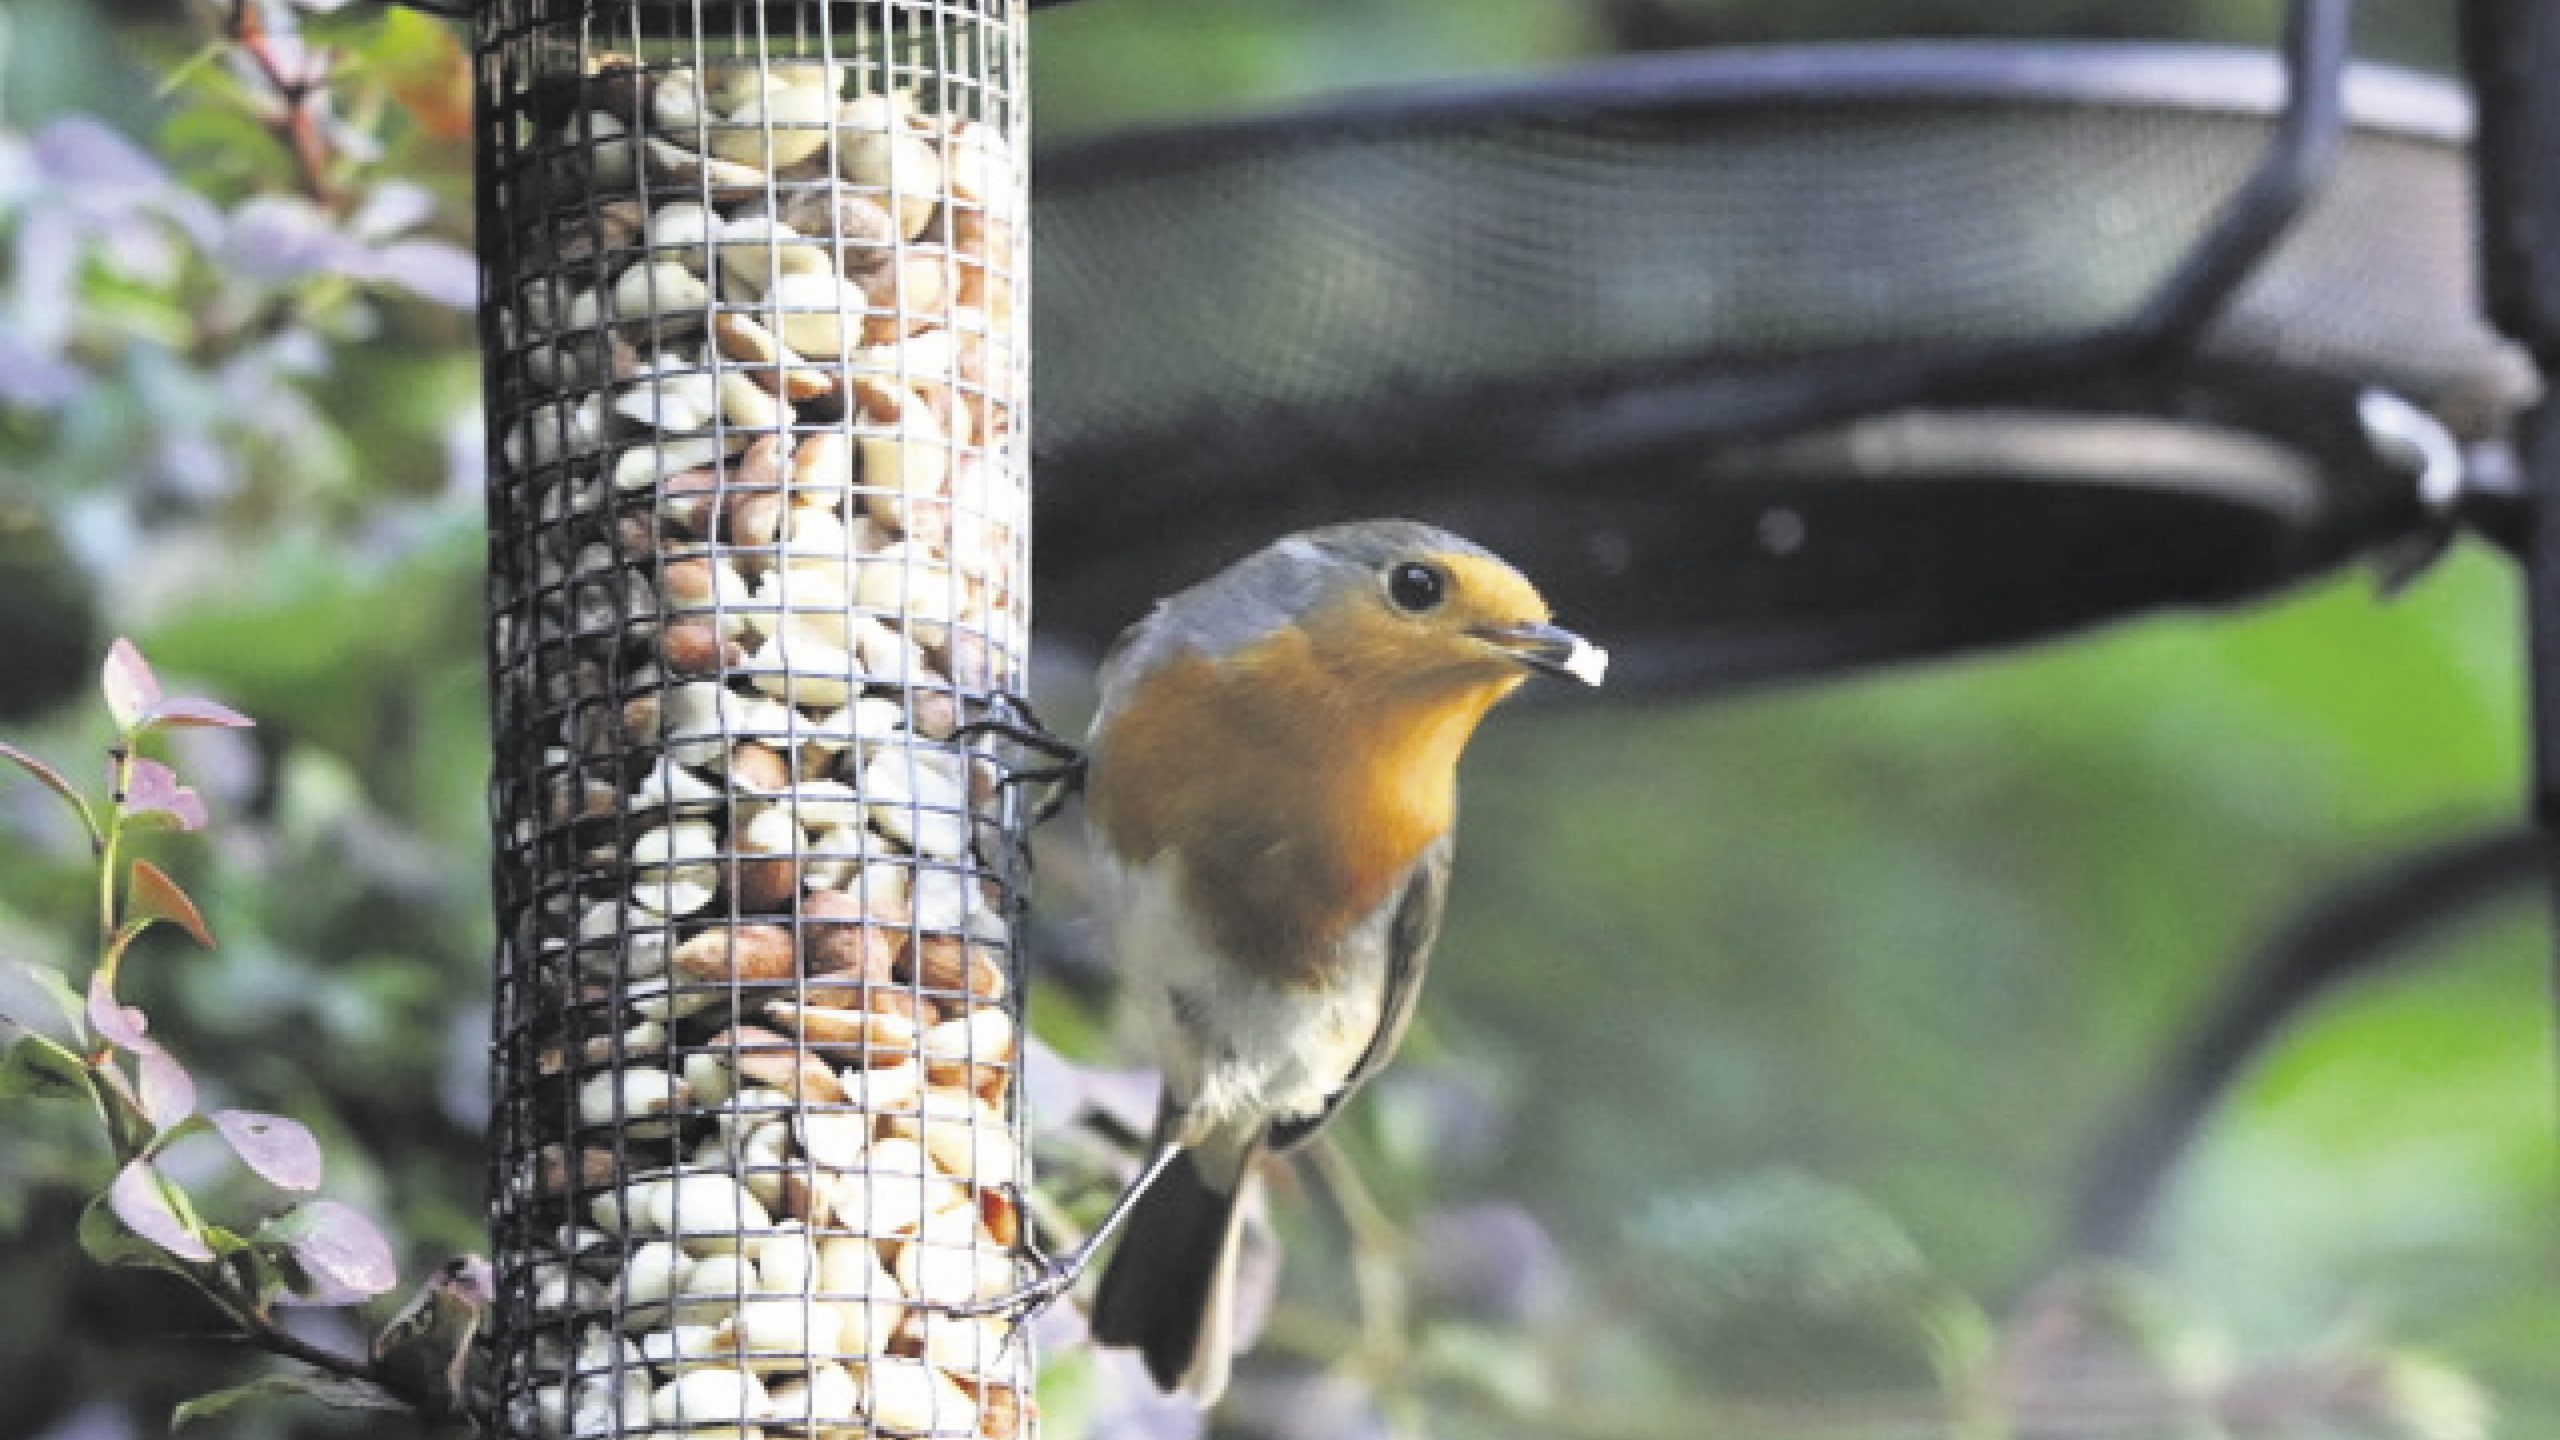 Win a supply of nutritious bird food and sturdy garden feeders Worth £100!